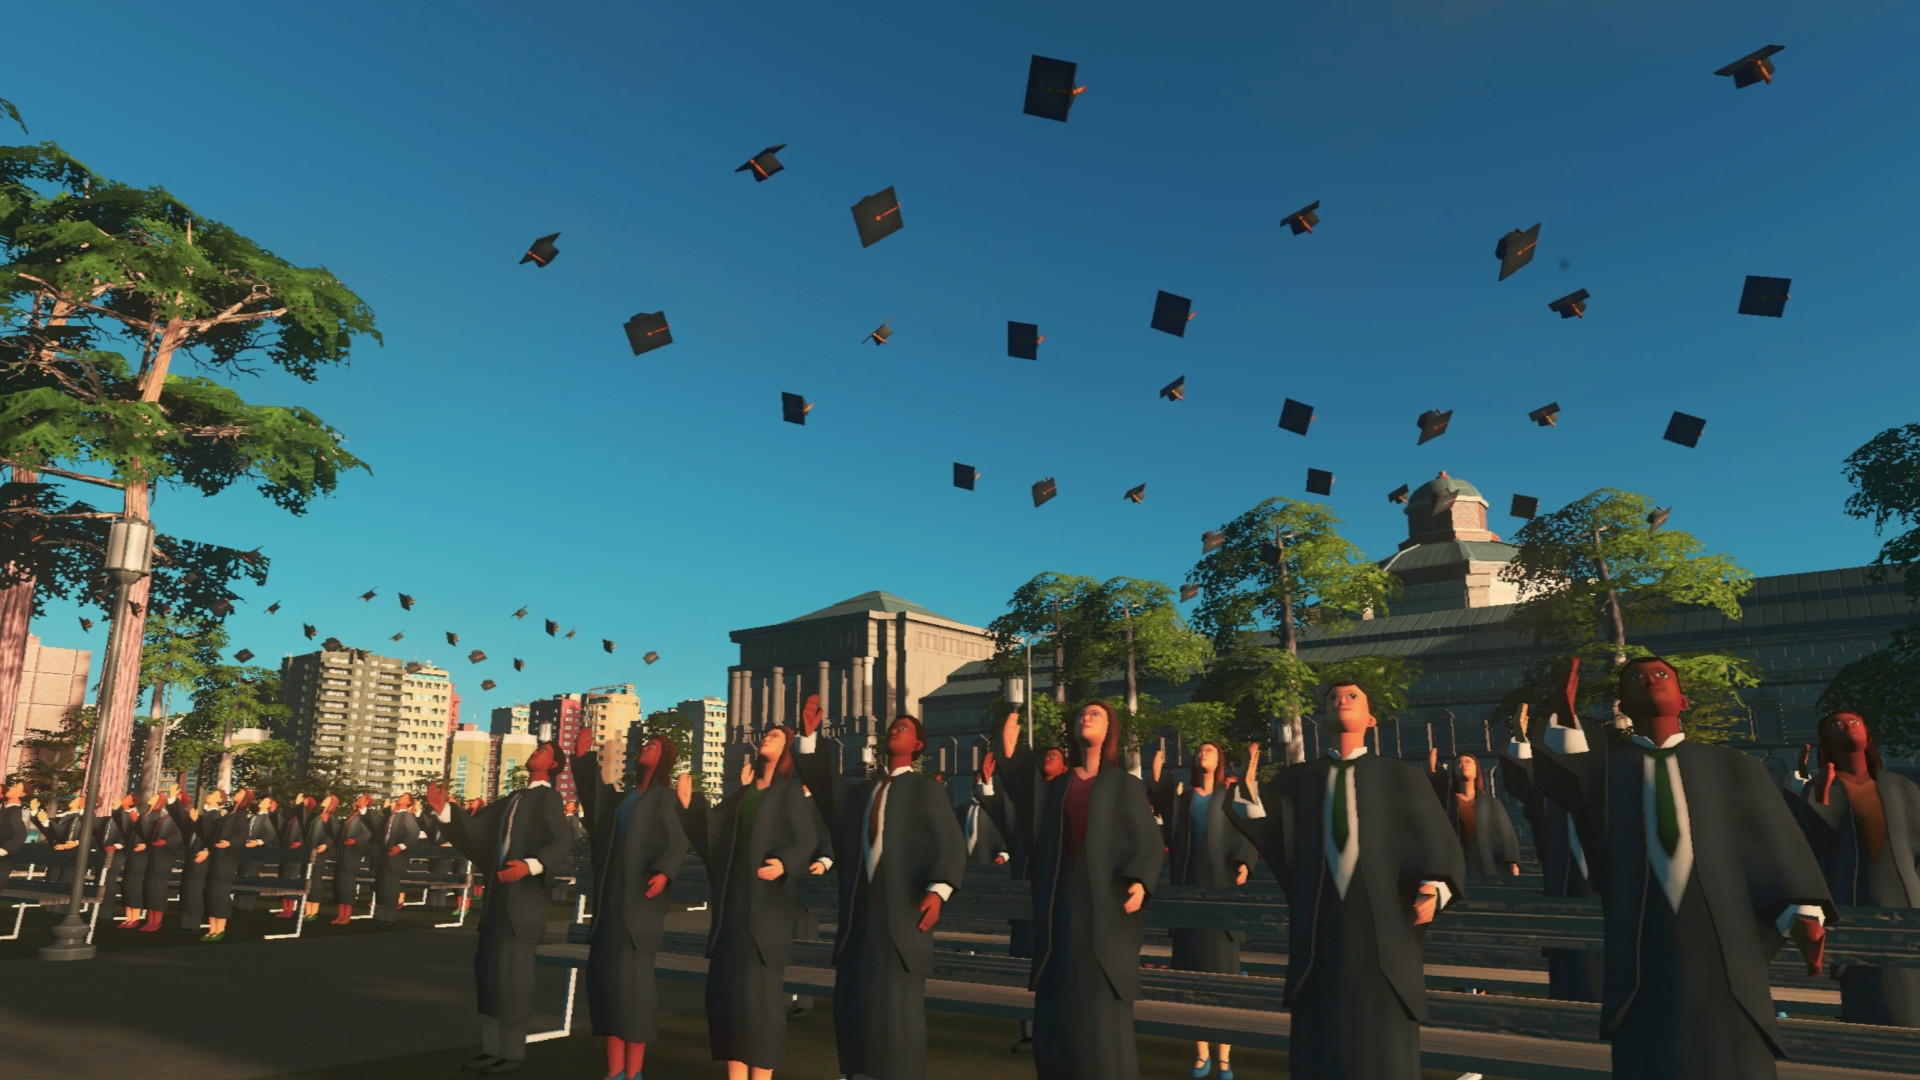 Moments before the entire graduating class was killed by falling mortar boards spilled from a passing aeroplane.